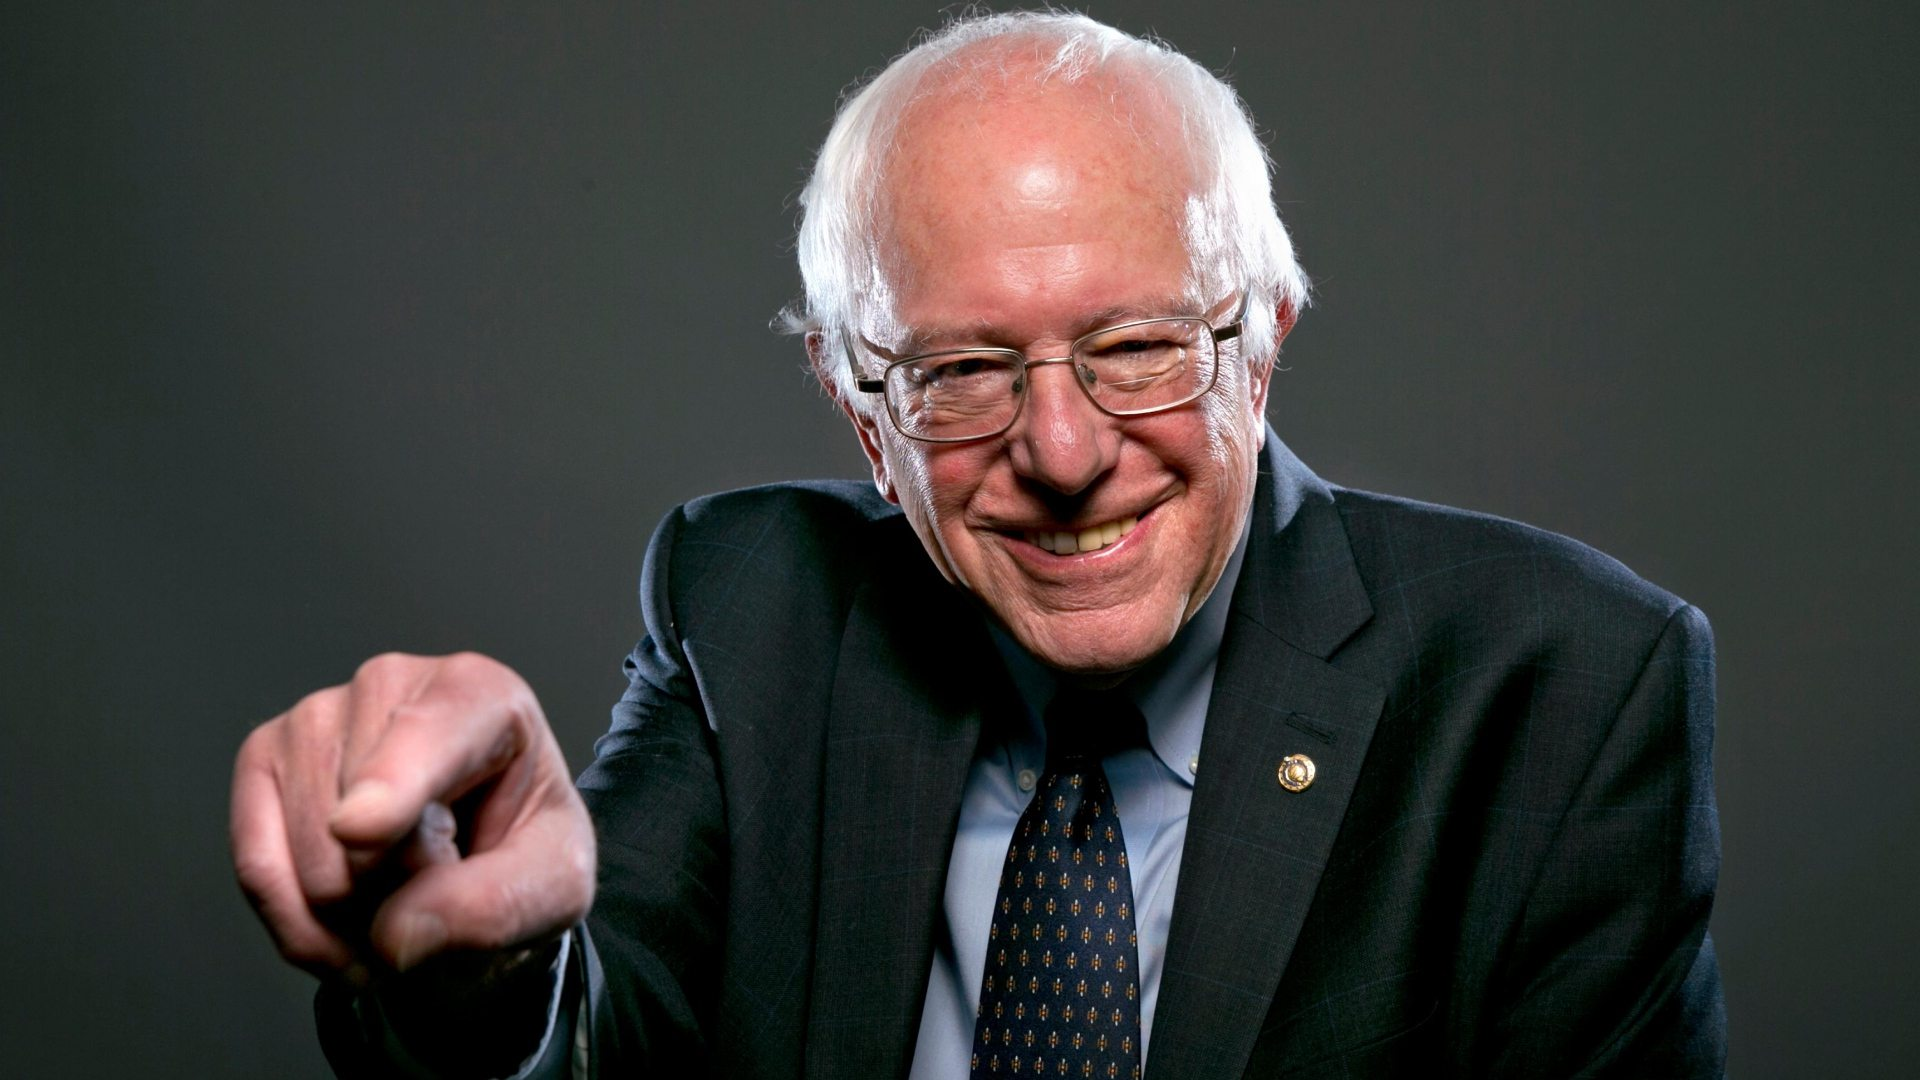 bernie_sanders_politician_smile_man_107459_1920x1080